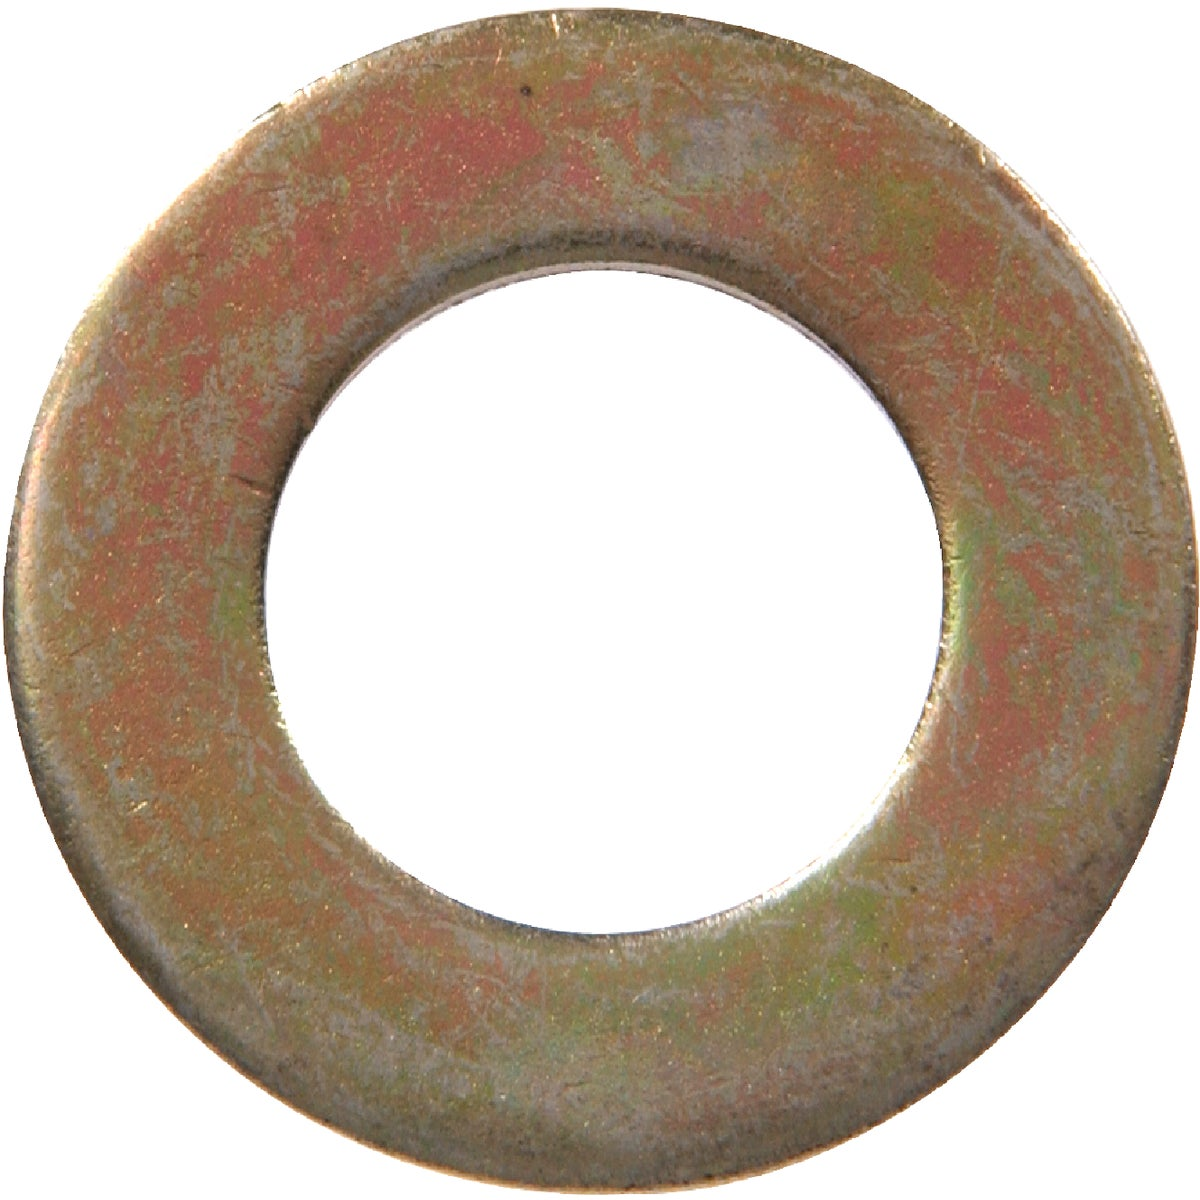 "1/4"" SAE FLAT WASHER"